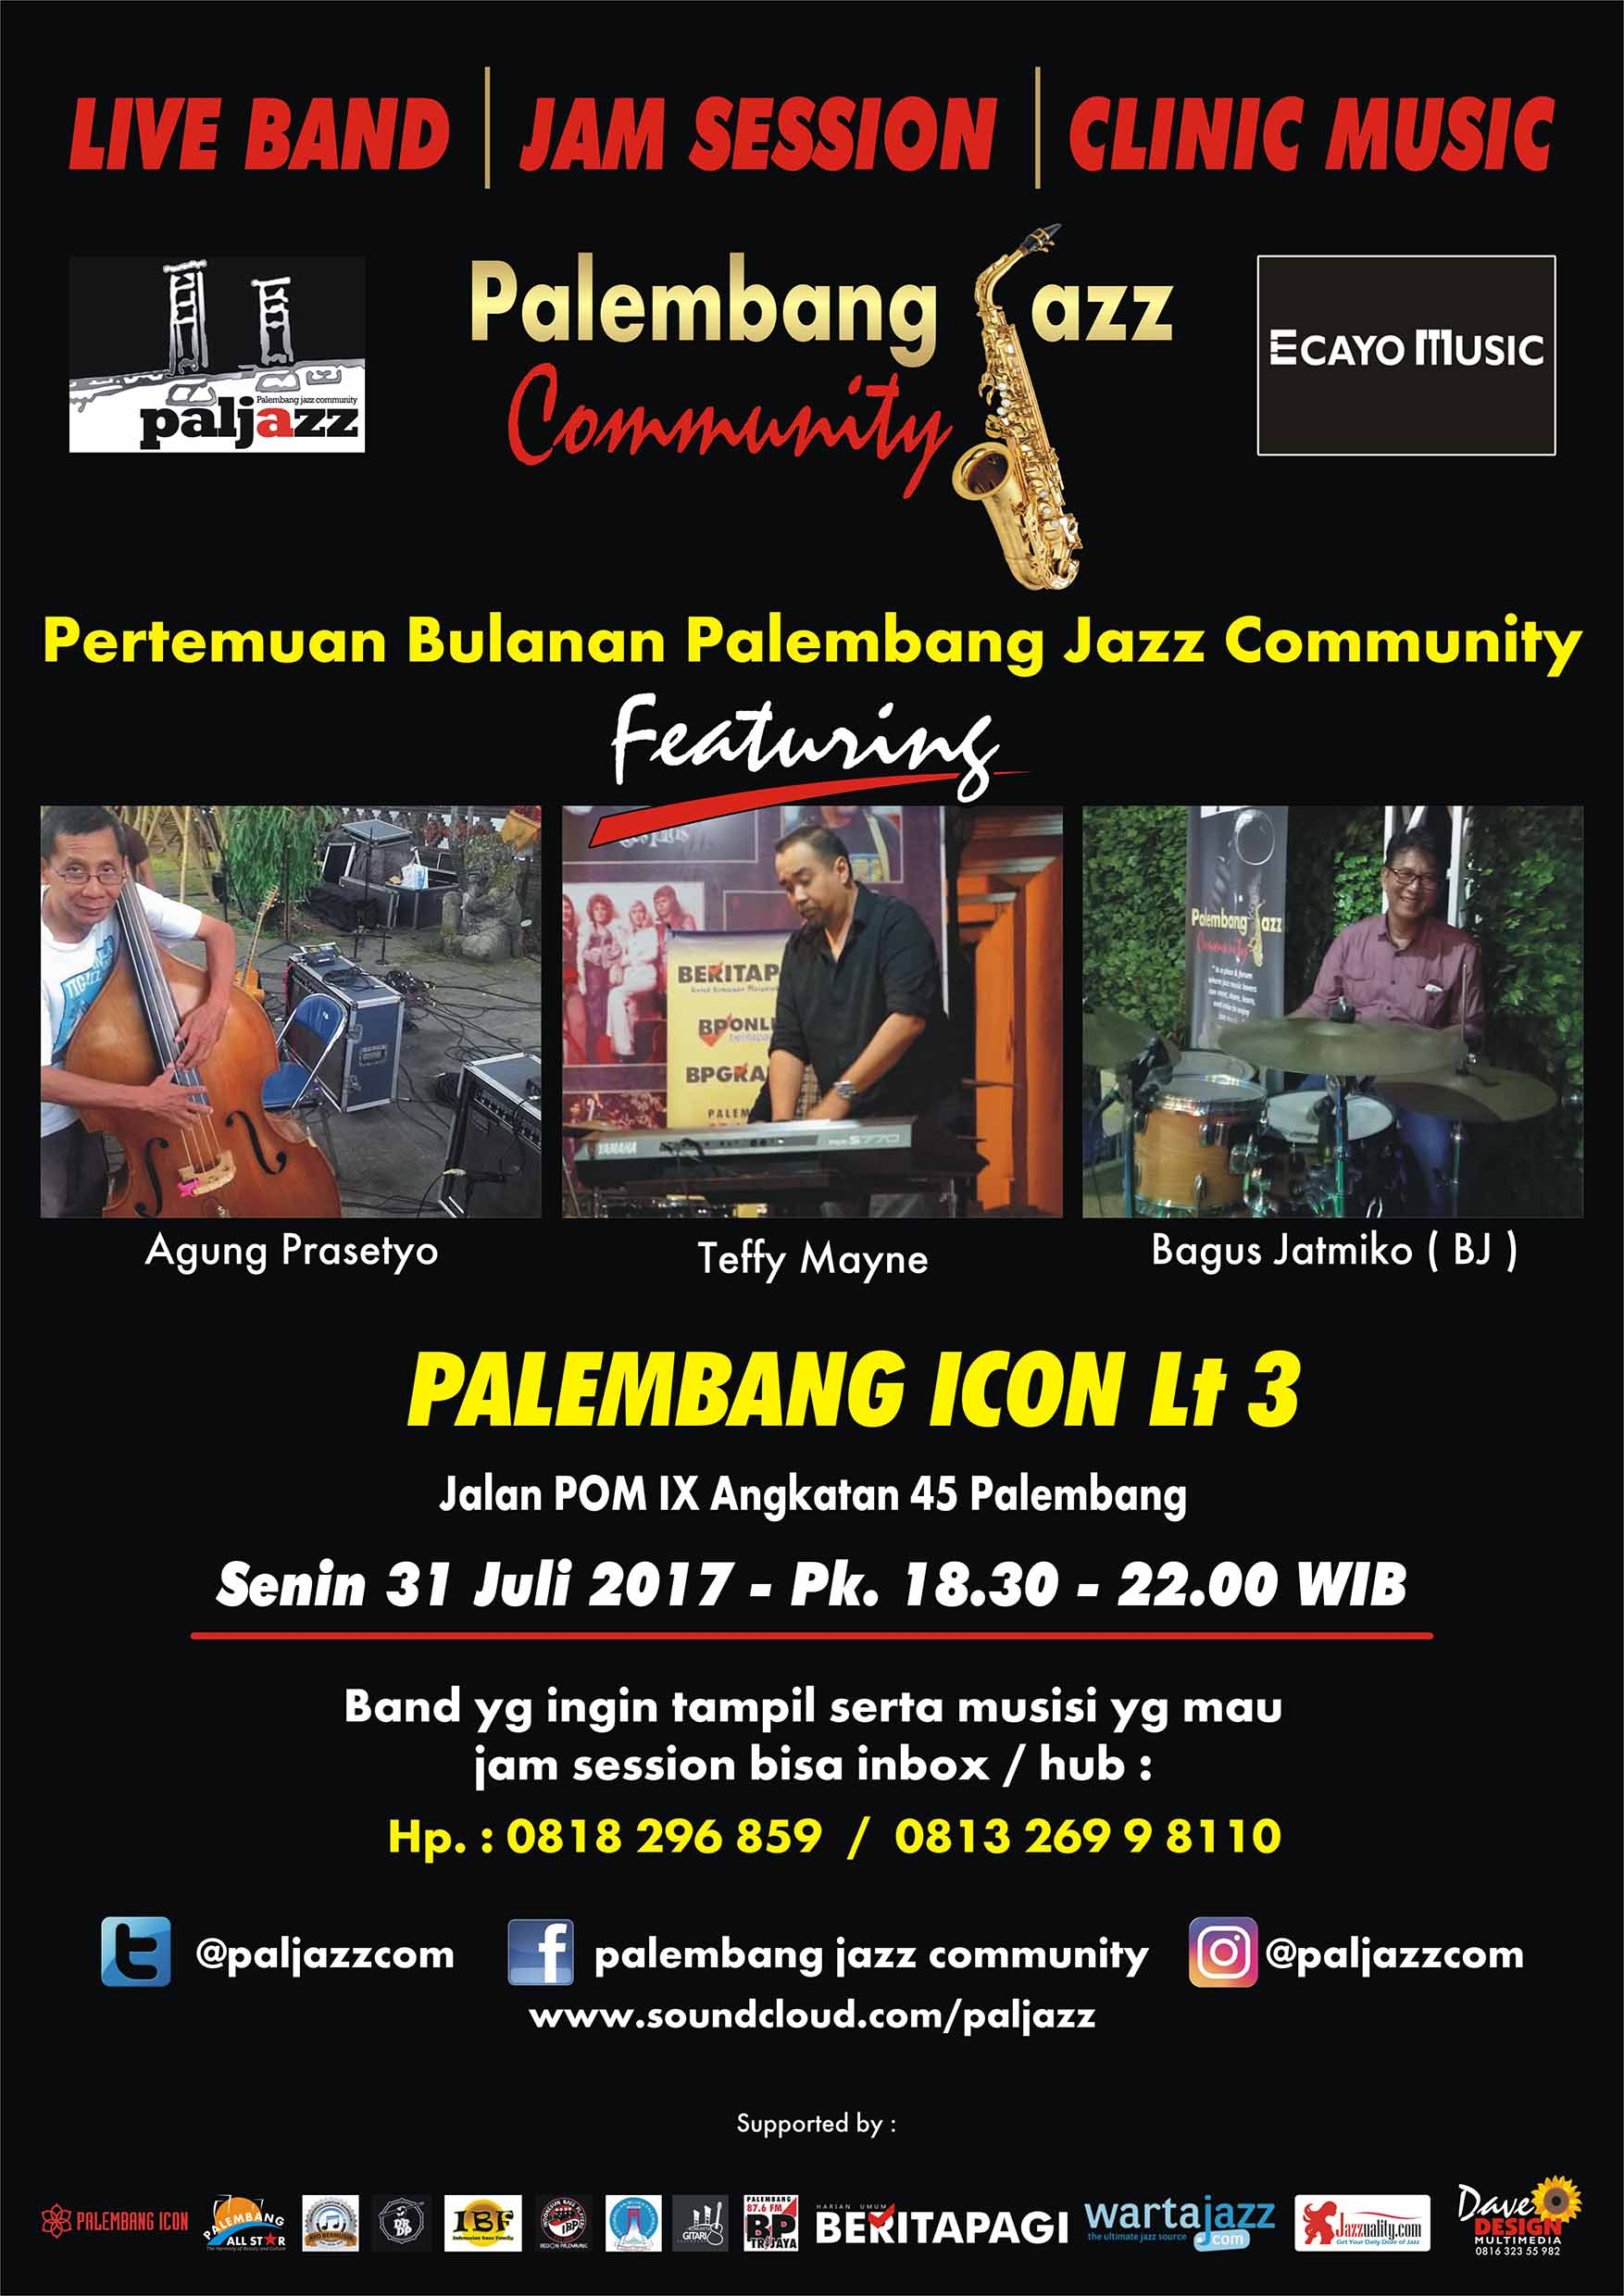 Photo of PAL JAZZ KONSISTEN DENGAN CLINIC MUSIC